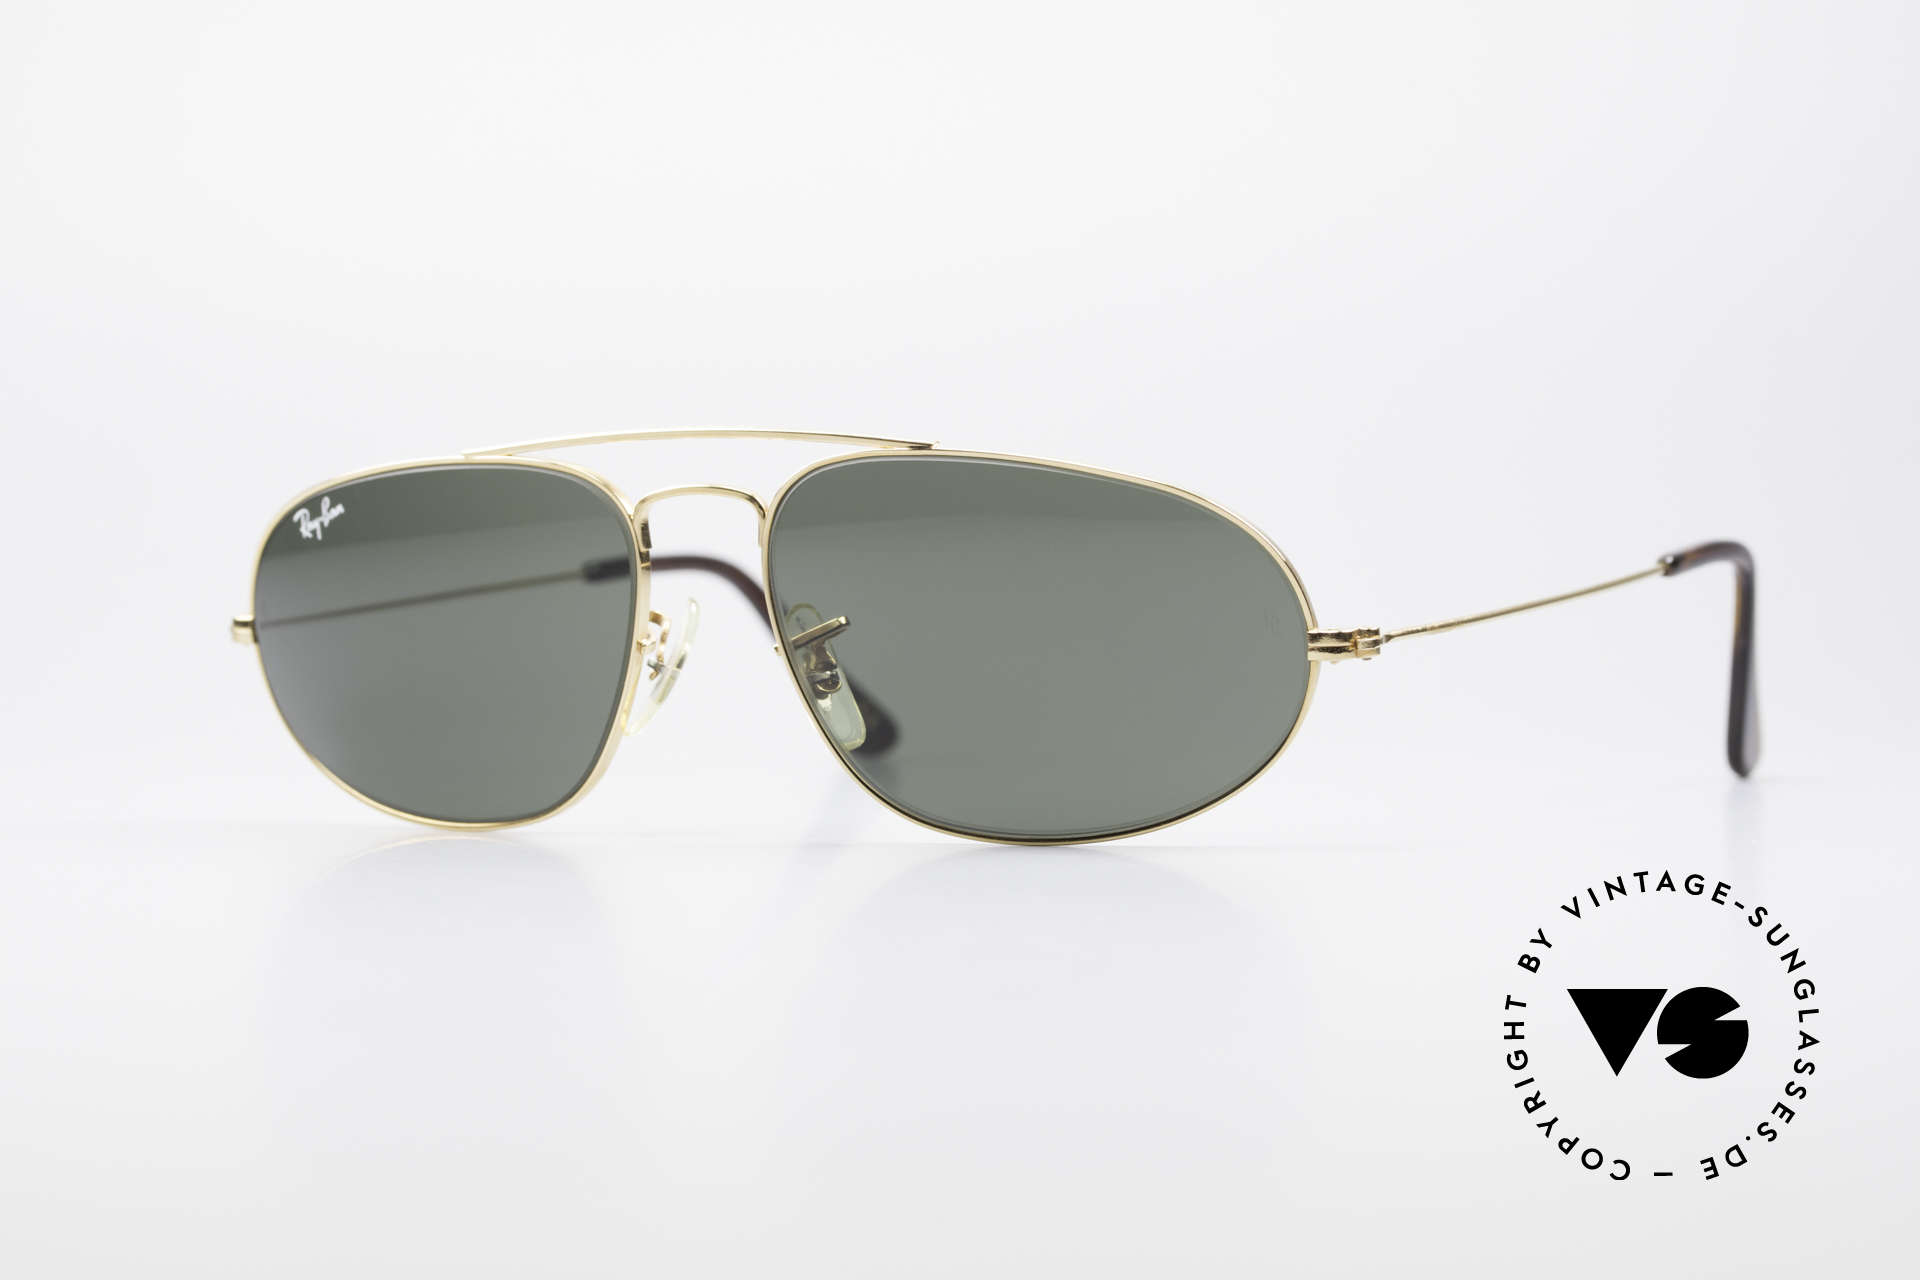 Ray Ban Fashion Metal 5 Extraordinary Aviator Shades, vintage frame of the Fashion Metal Collection, Made for Men